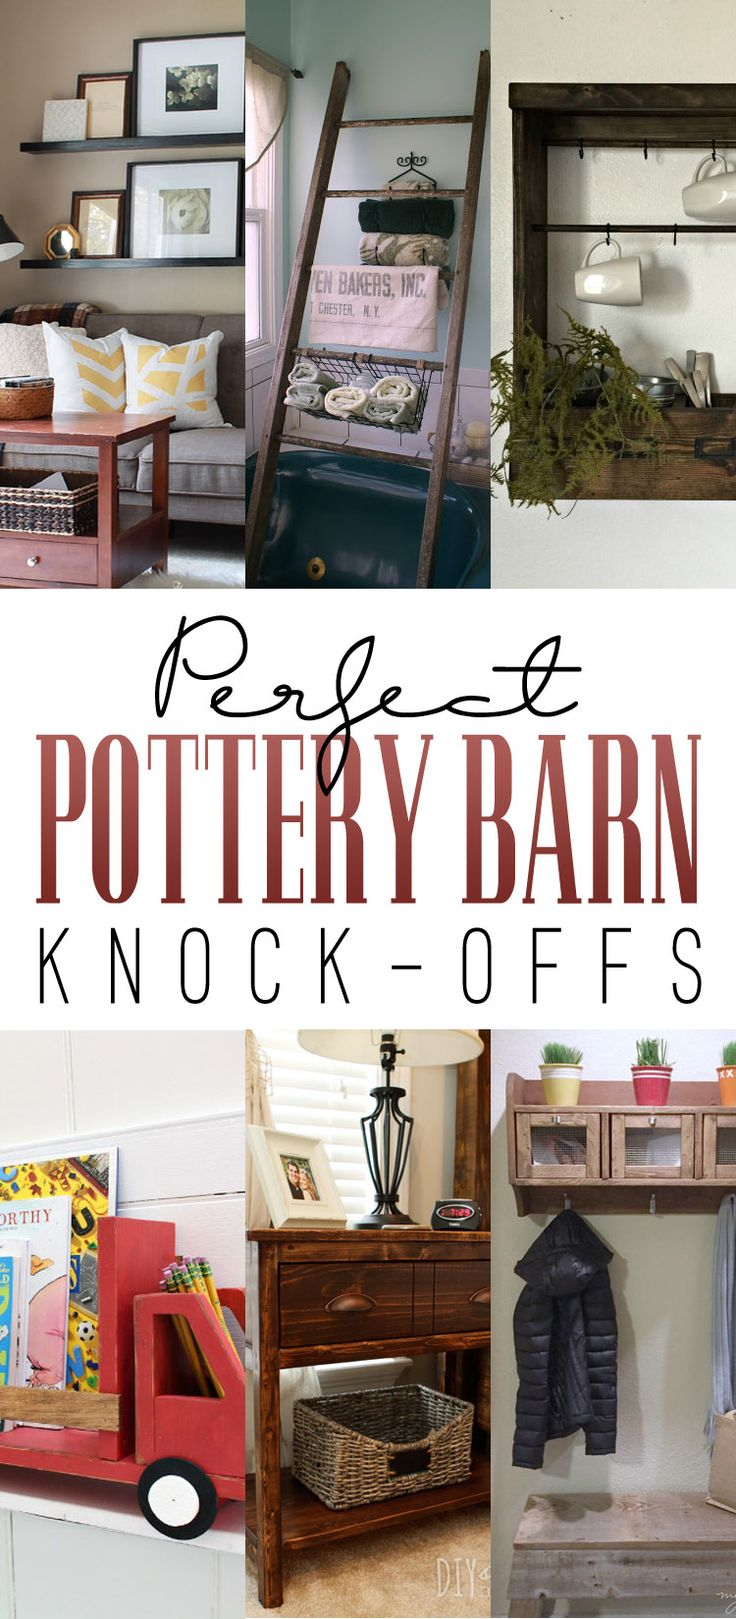 Knock Offs Toy Meets World: 17 Best Images About Pottery Barn DIY On Pinterest